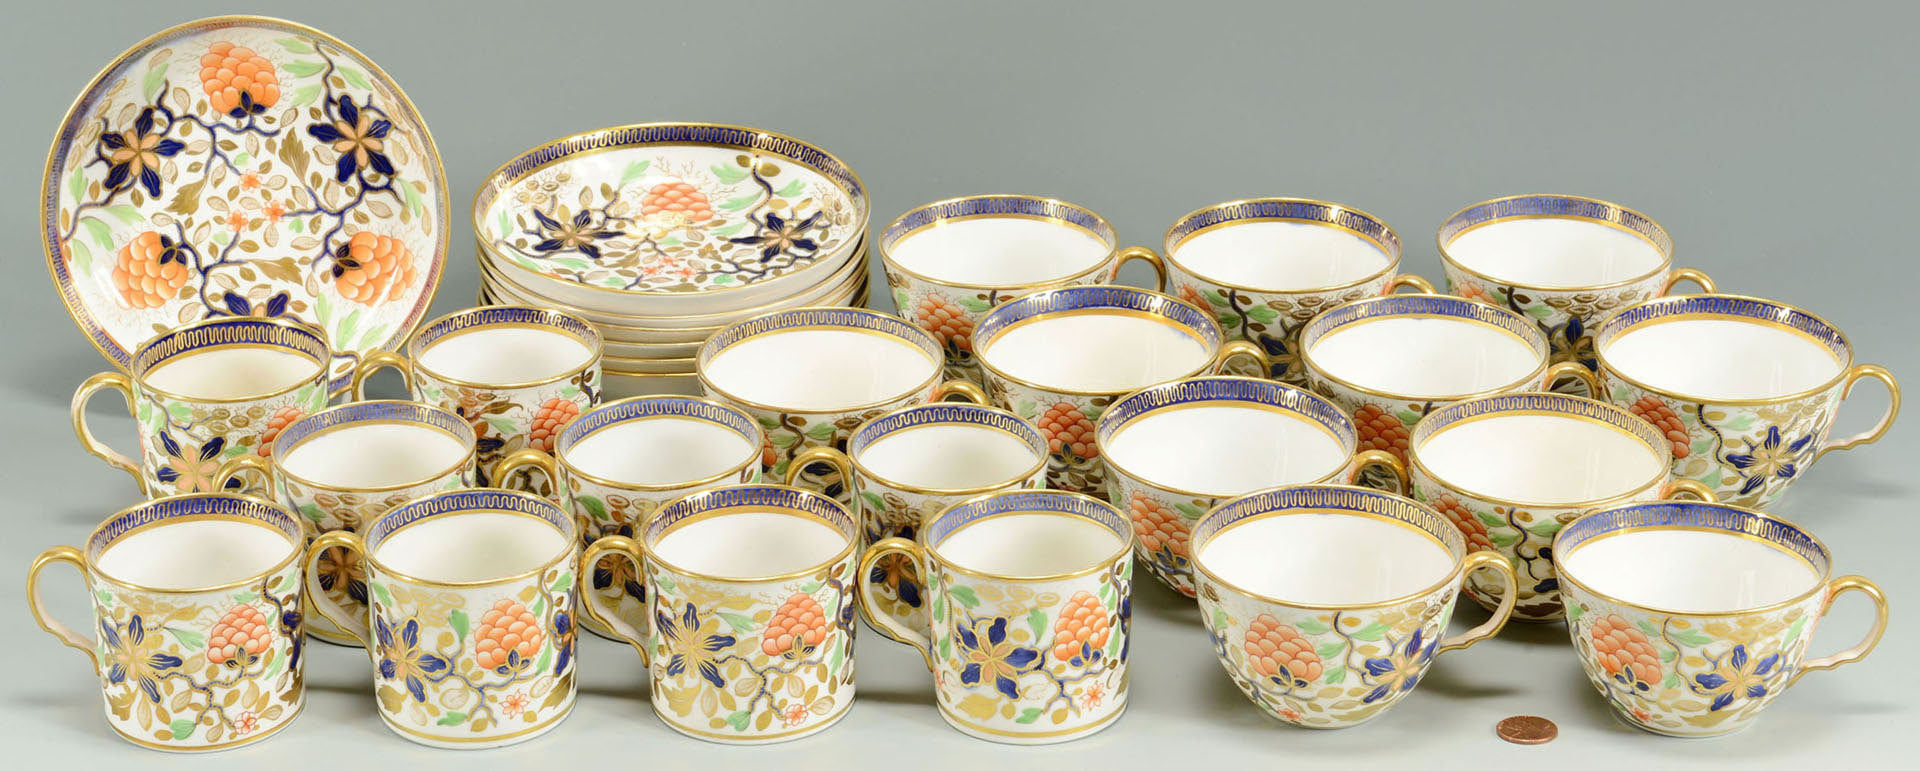 Lot 241: 27 pcs English Imari cups, saucers, poss. Worceste